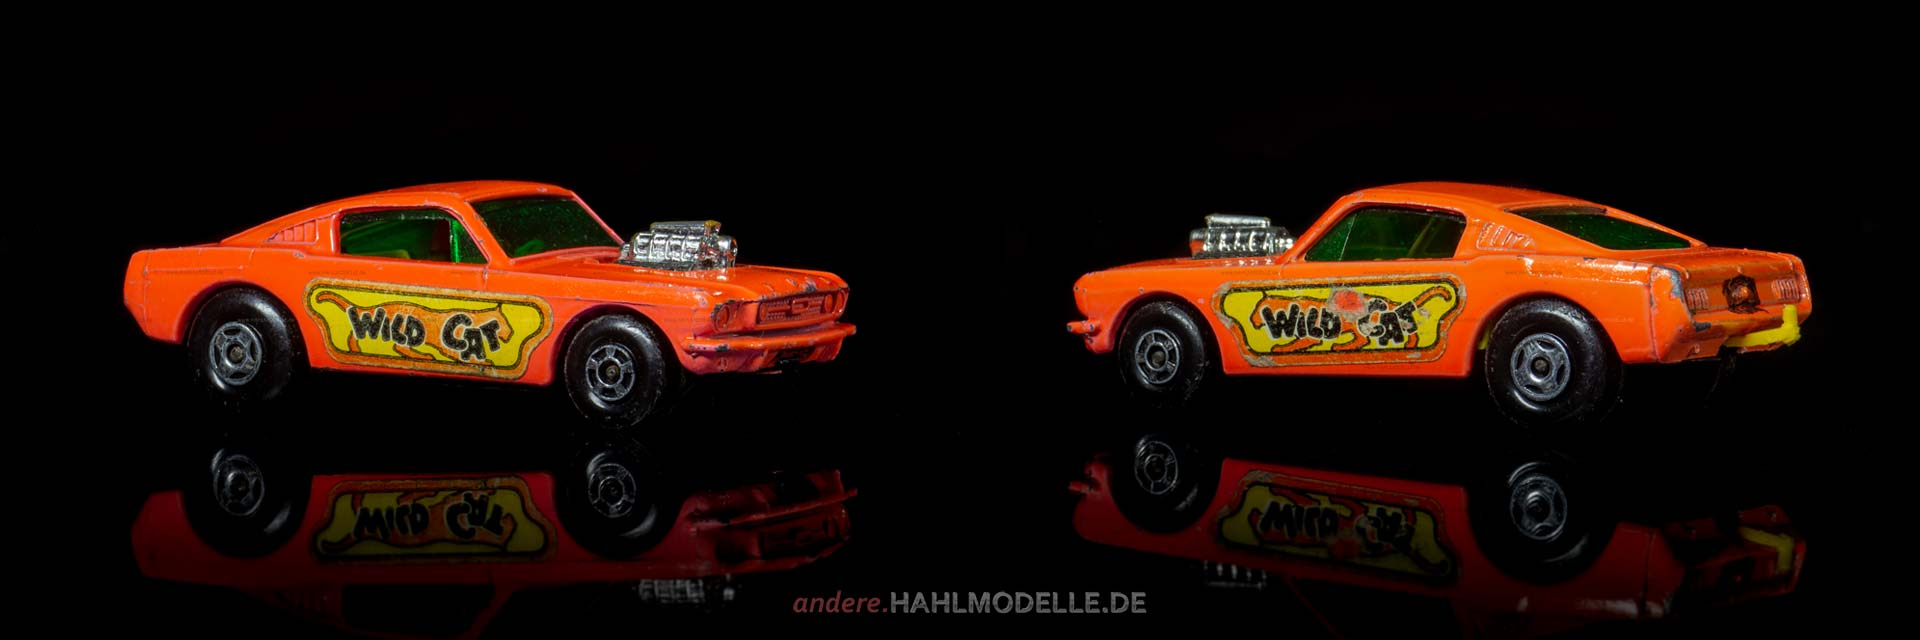 Ford Mustang I (1. Version) | Coupé | Lesney Products & Co. Ltd. | Matchbox Wildcat Dragster | www.andere.hahlmodelle.de